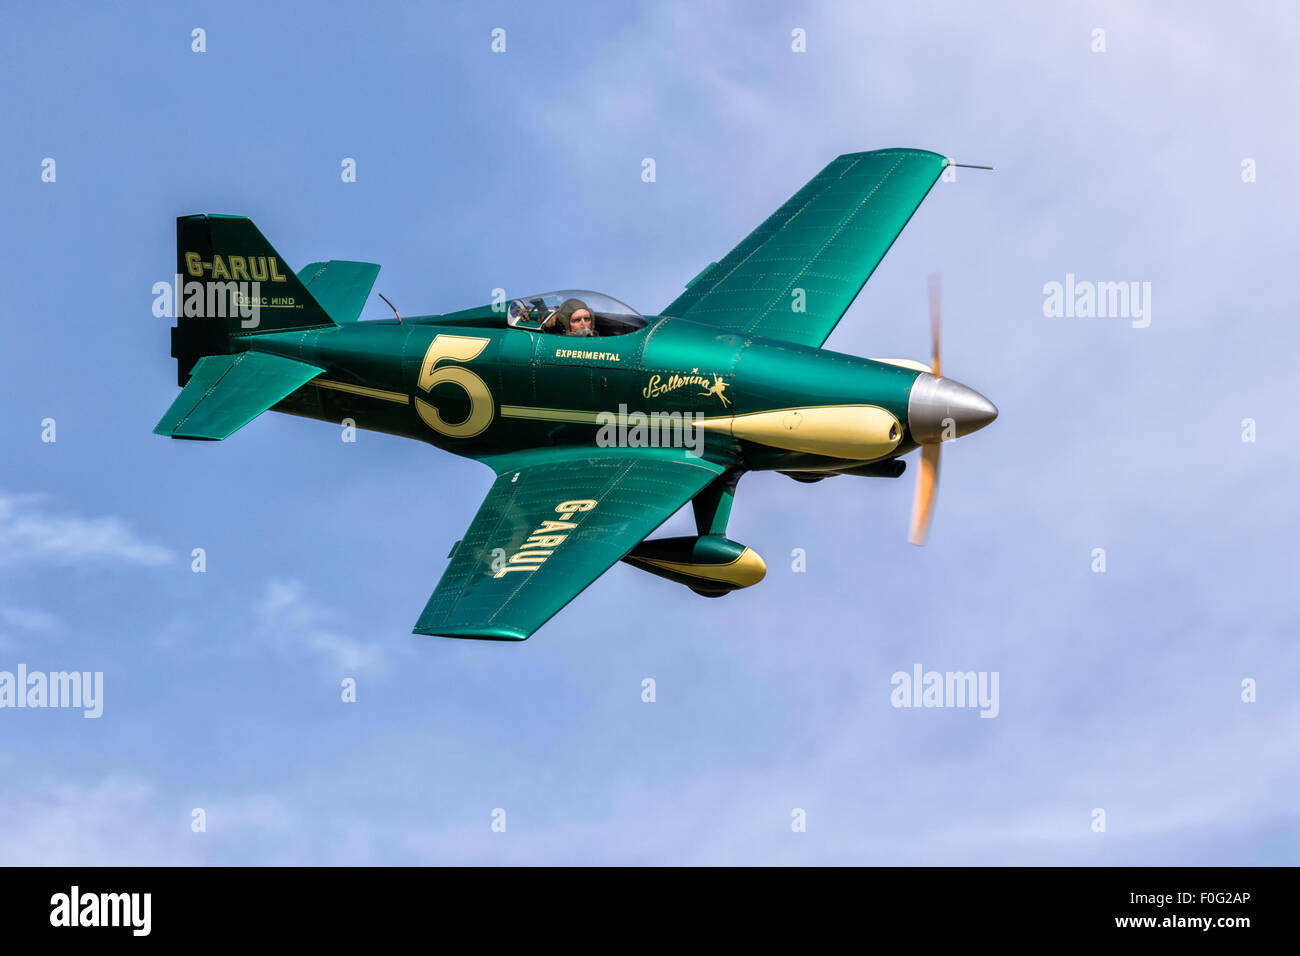 A classic US racing aircraft - The LeVier Cosmic wind - Stock Image